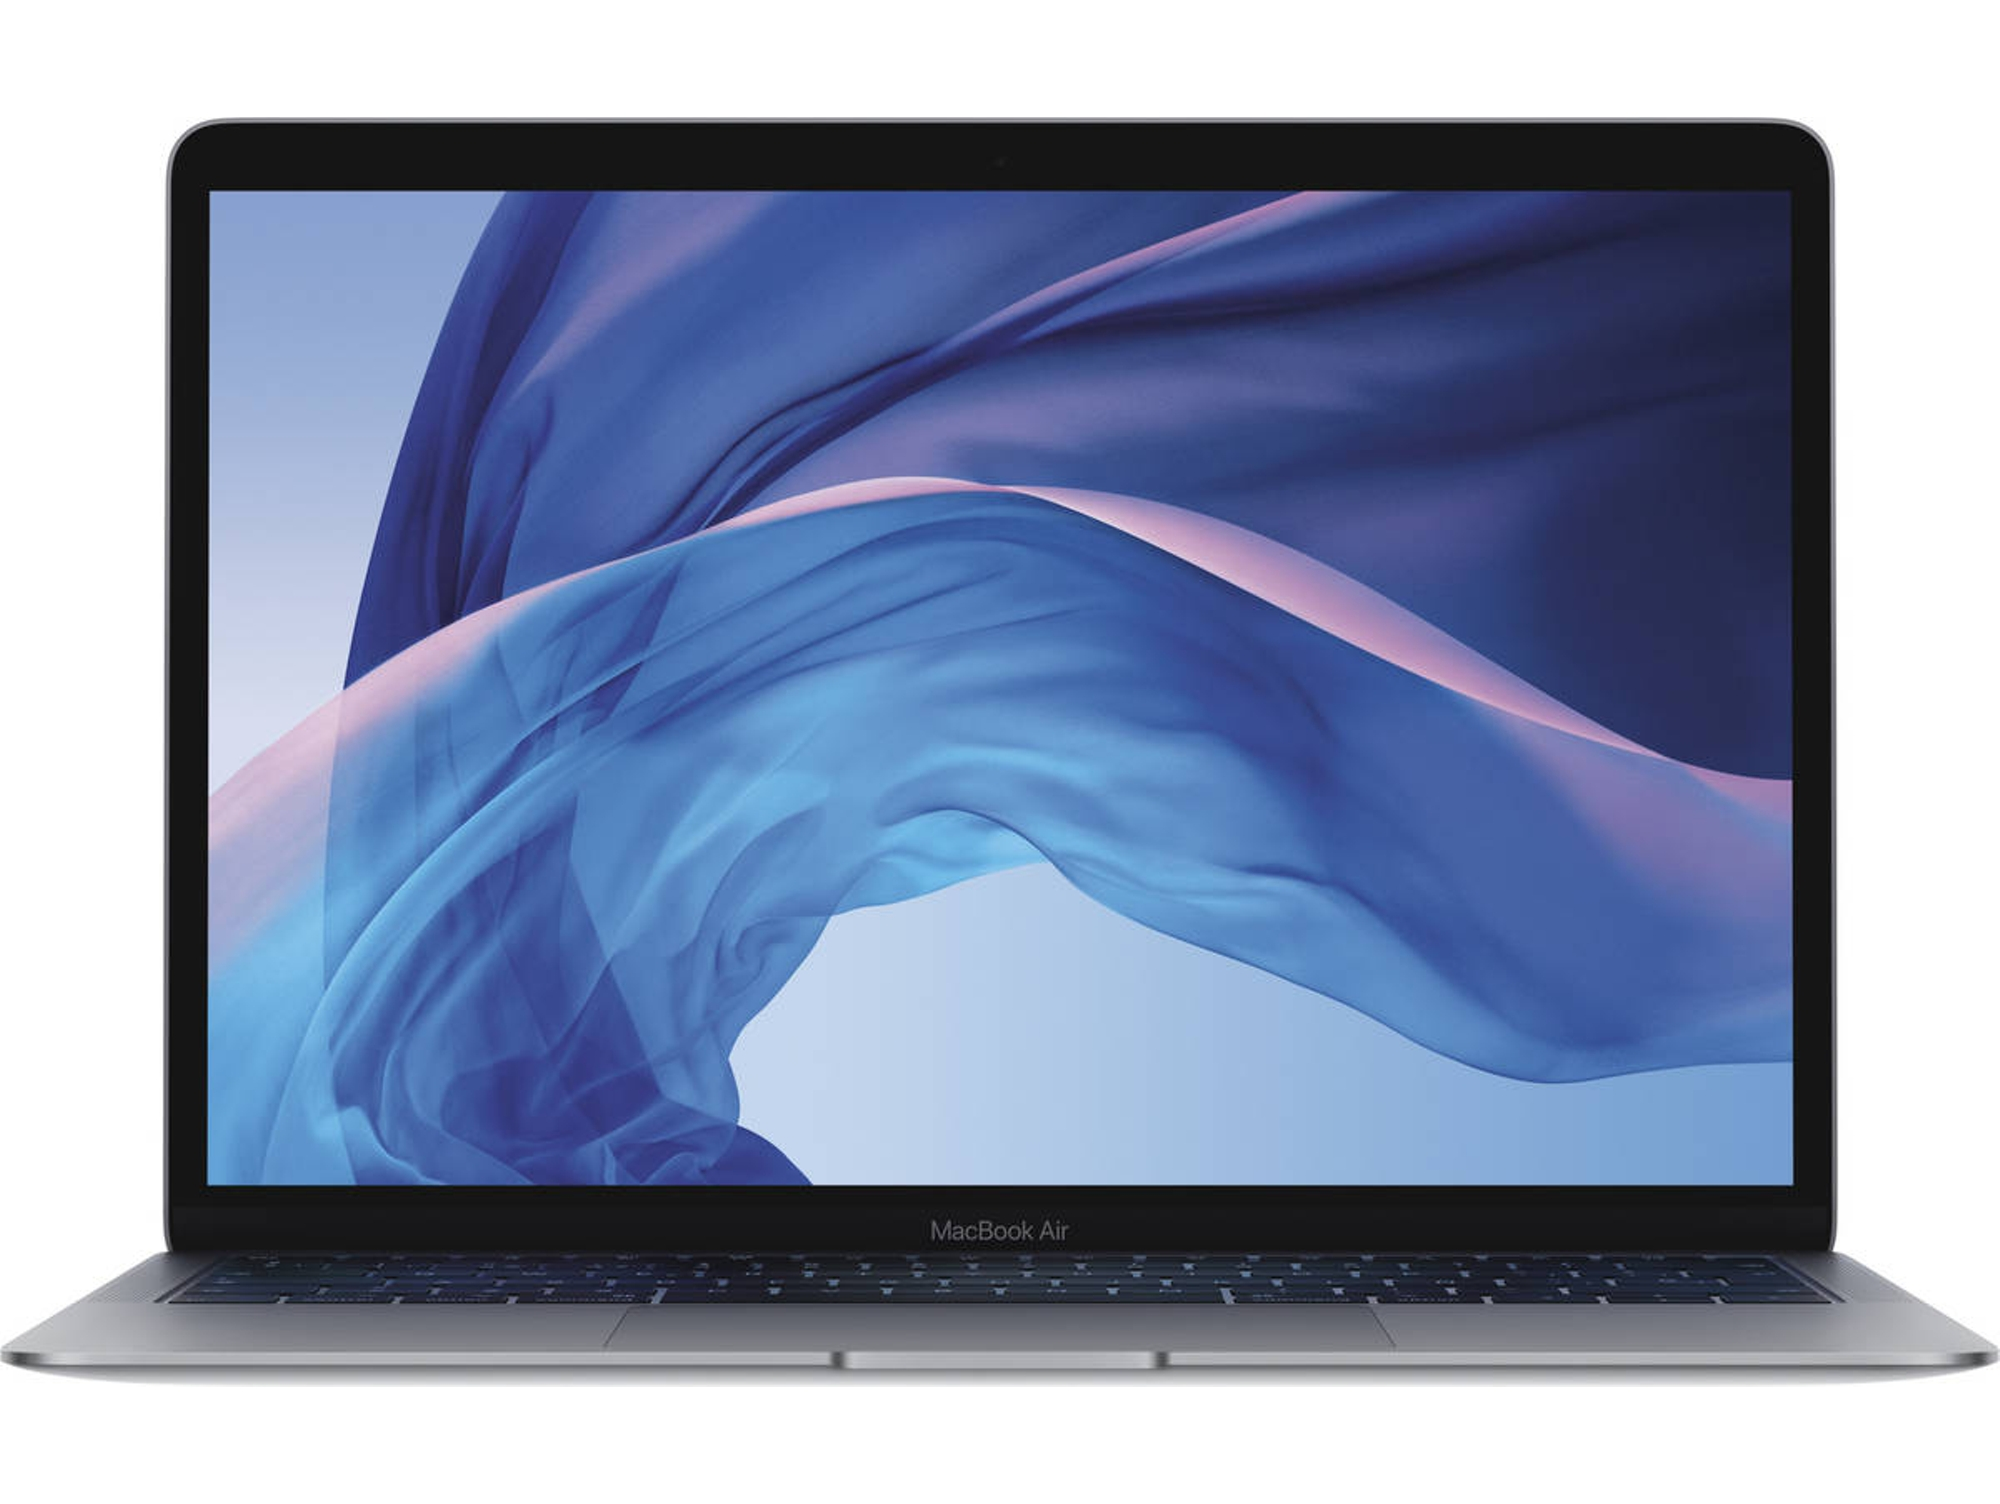 Sorteo online de un macbook air APPLE